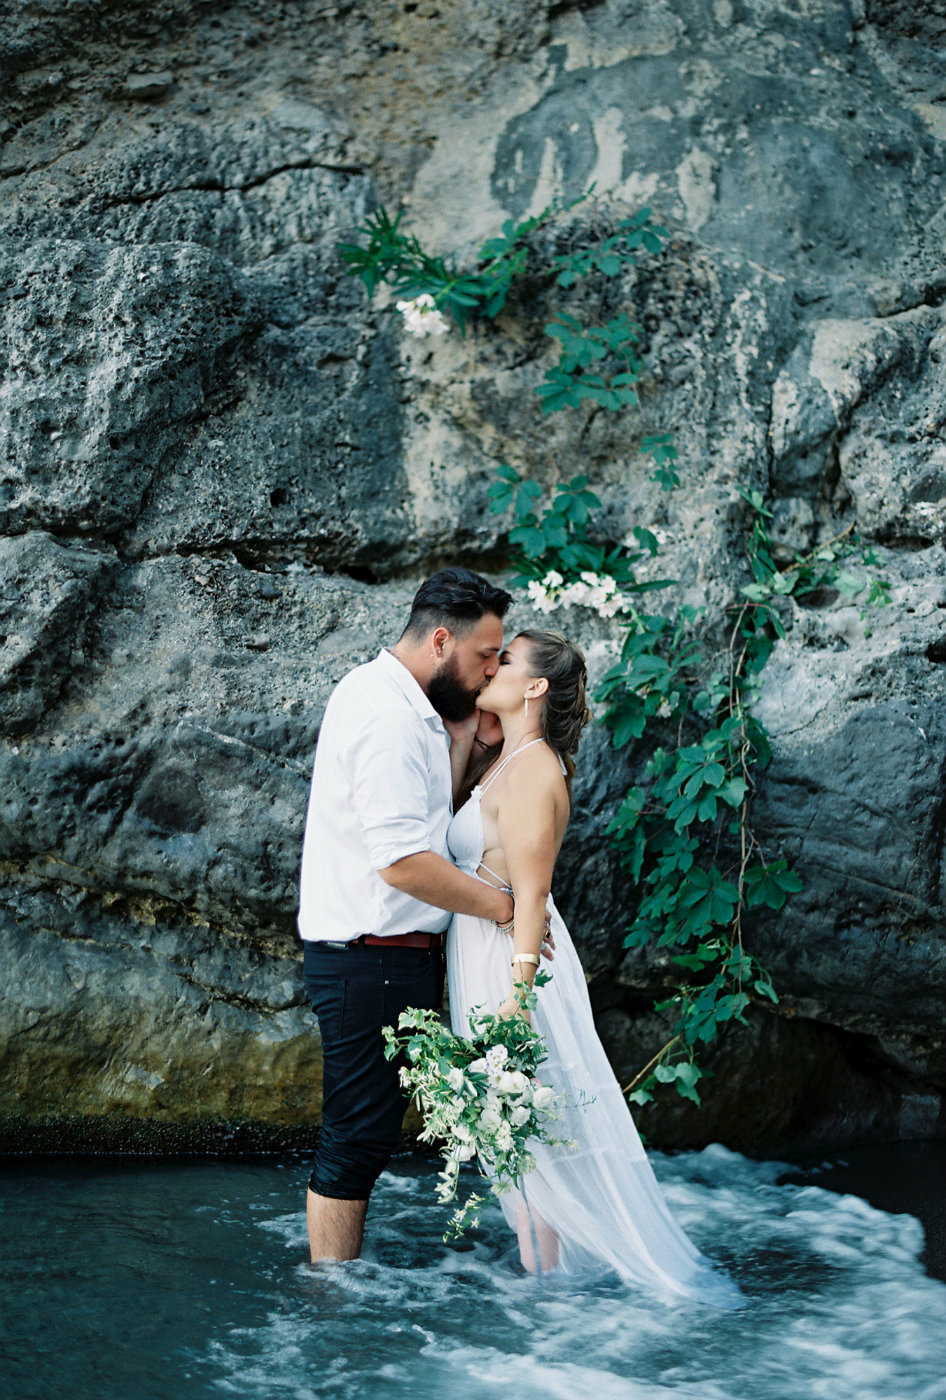 positano_italy_elopement_melanie_gabrielle_photography_112